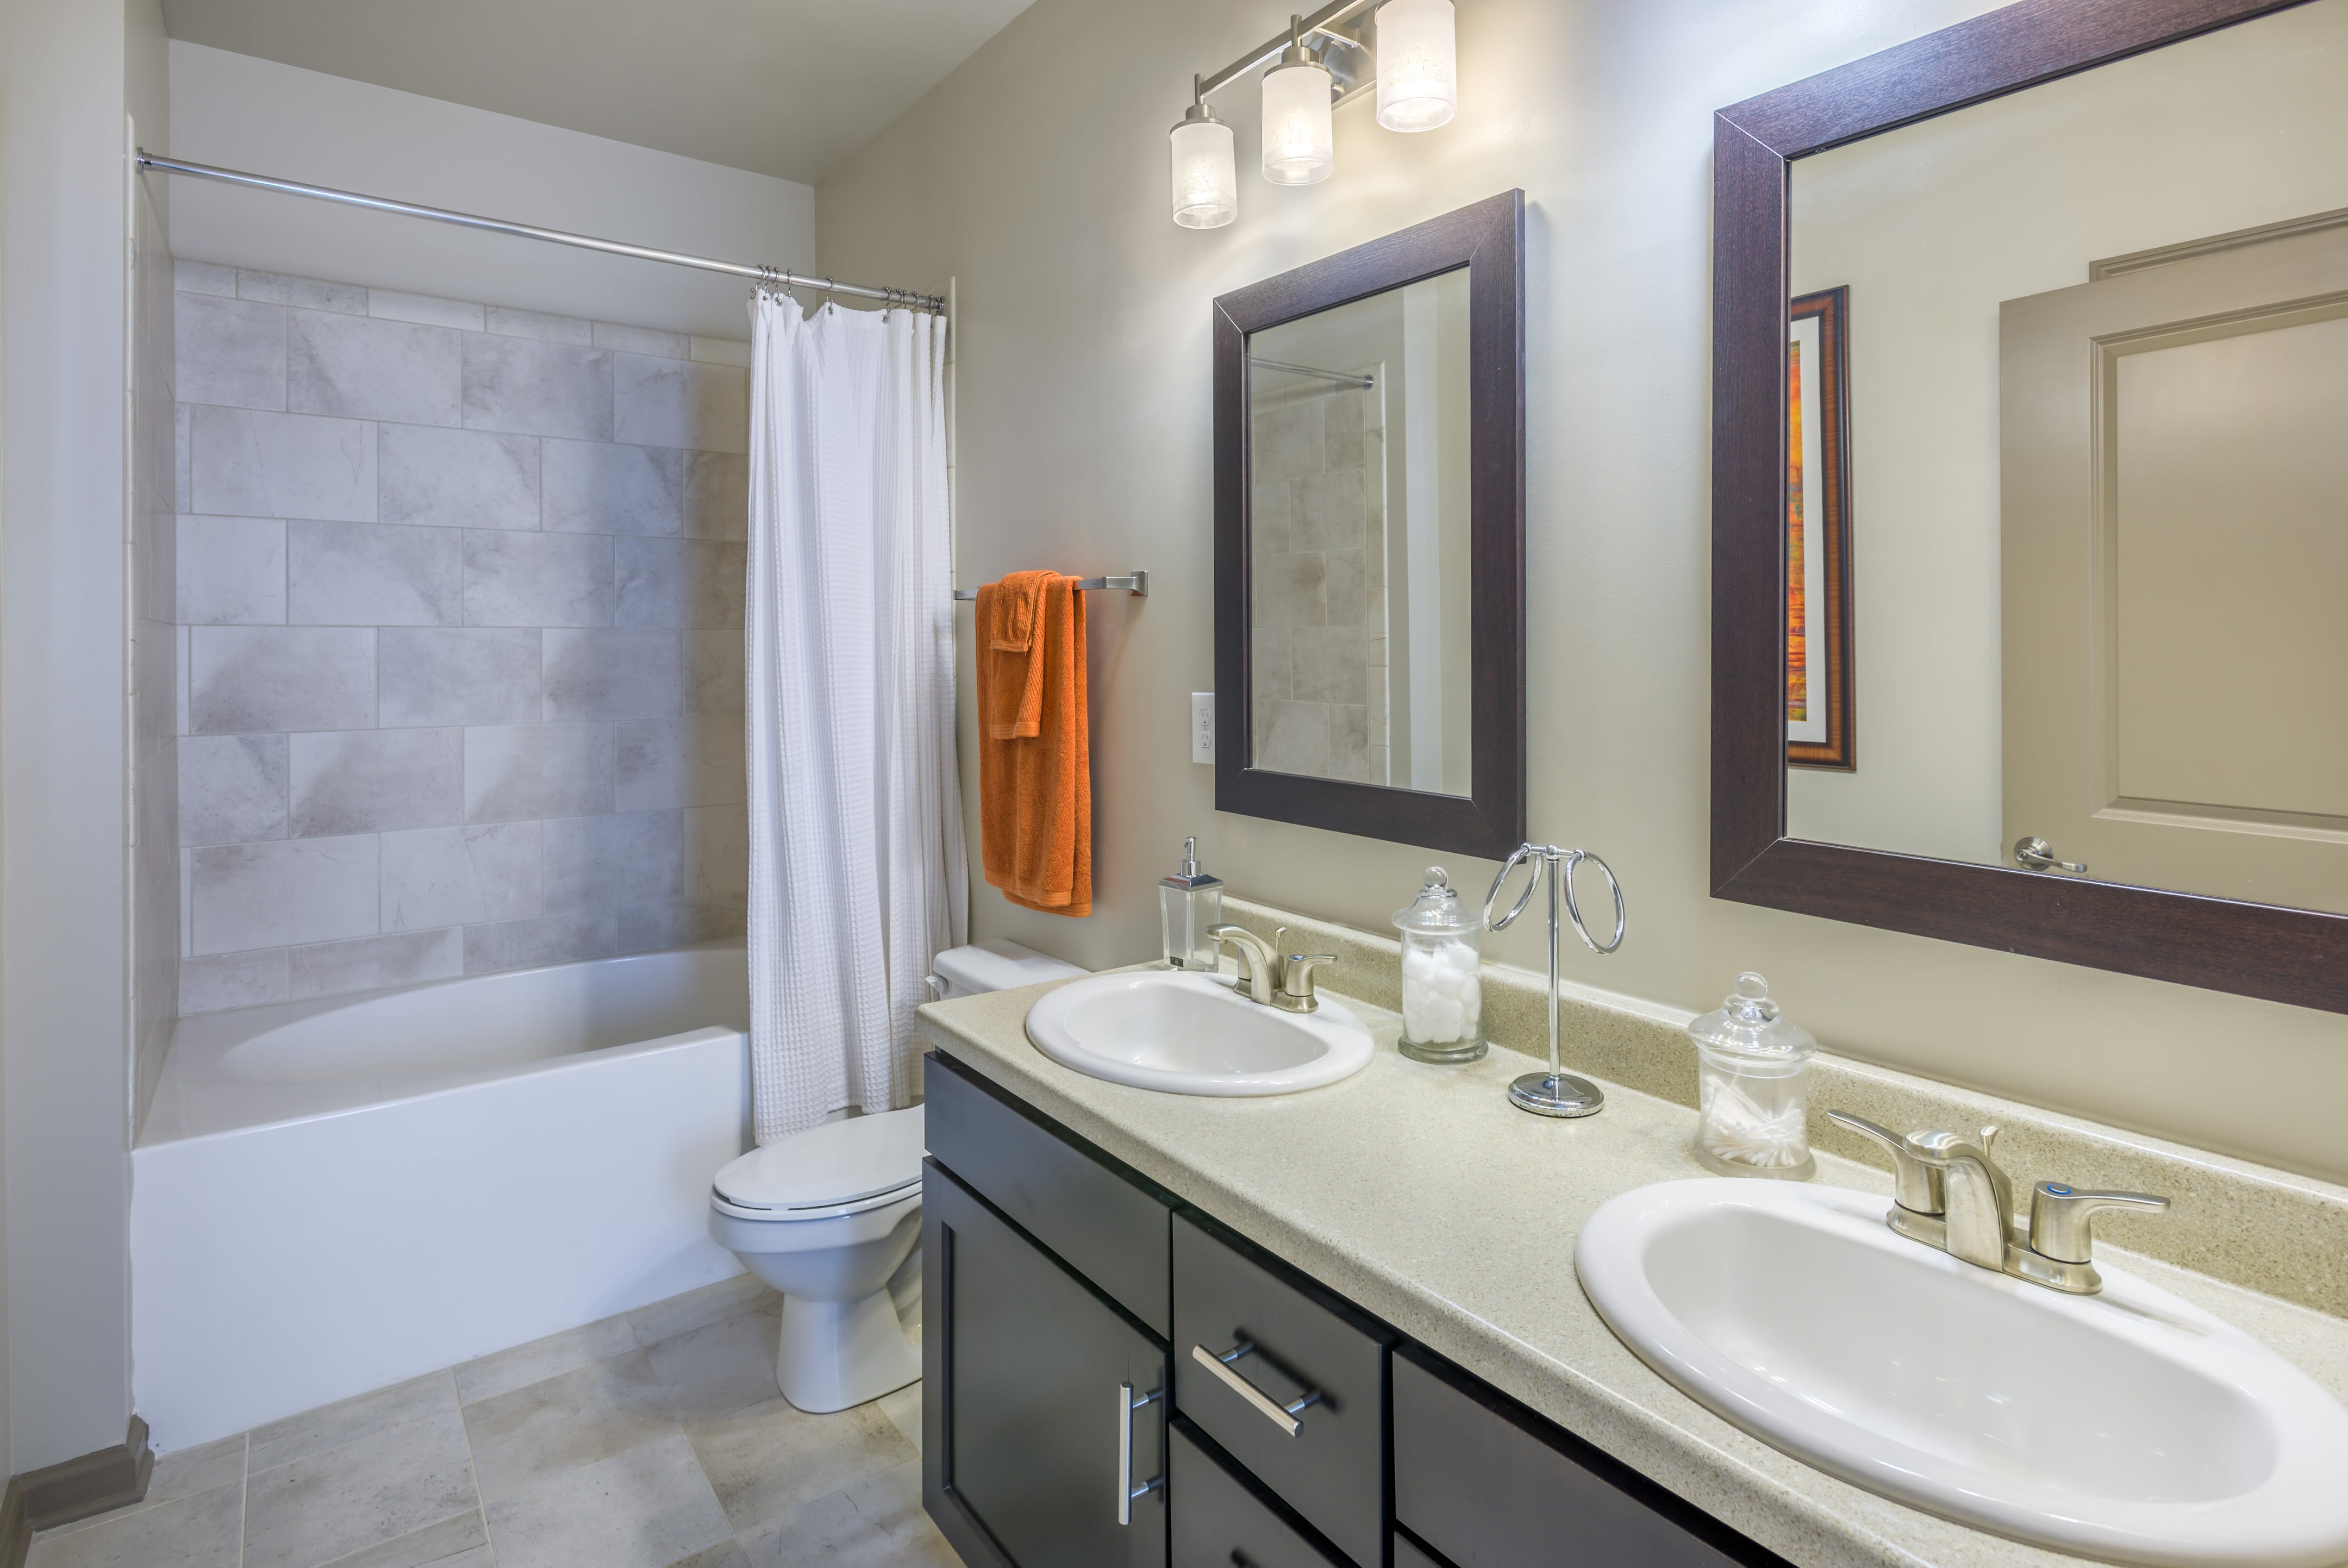 1 2 3 bedroom apartments in north charlotte the district - 1 bedroom apartment in charlotte nc ...